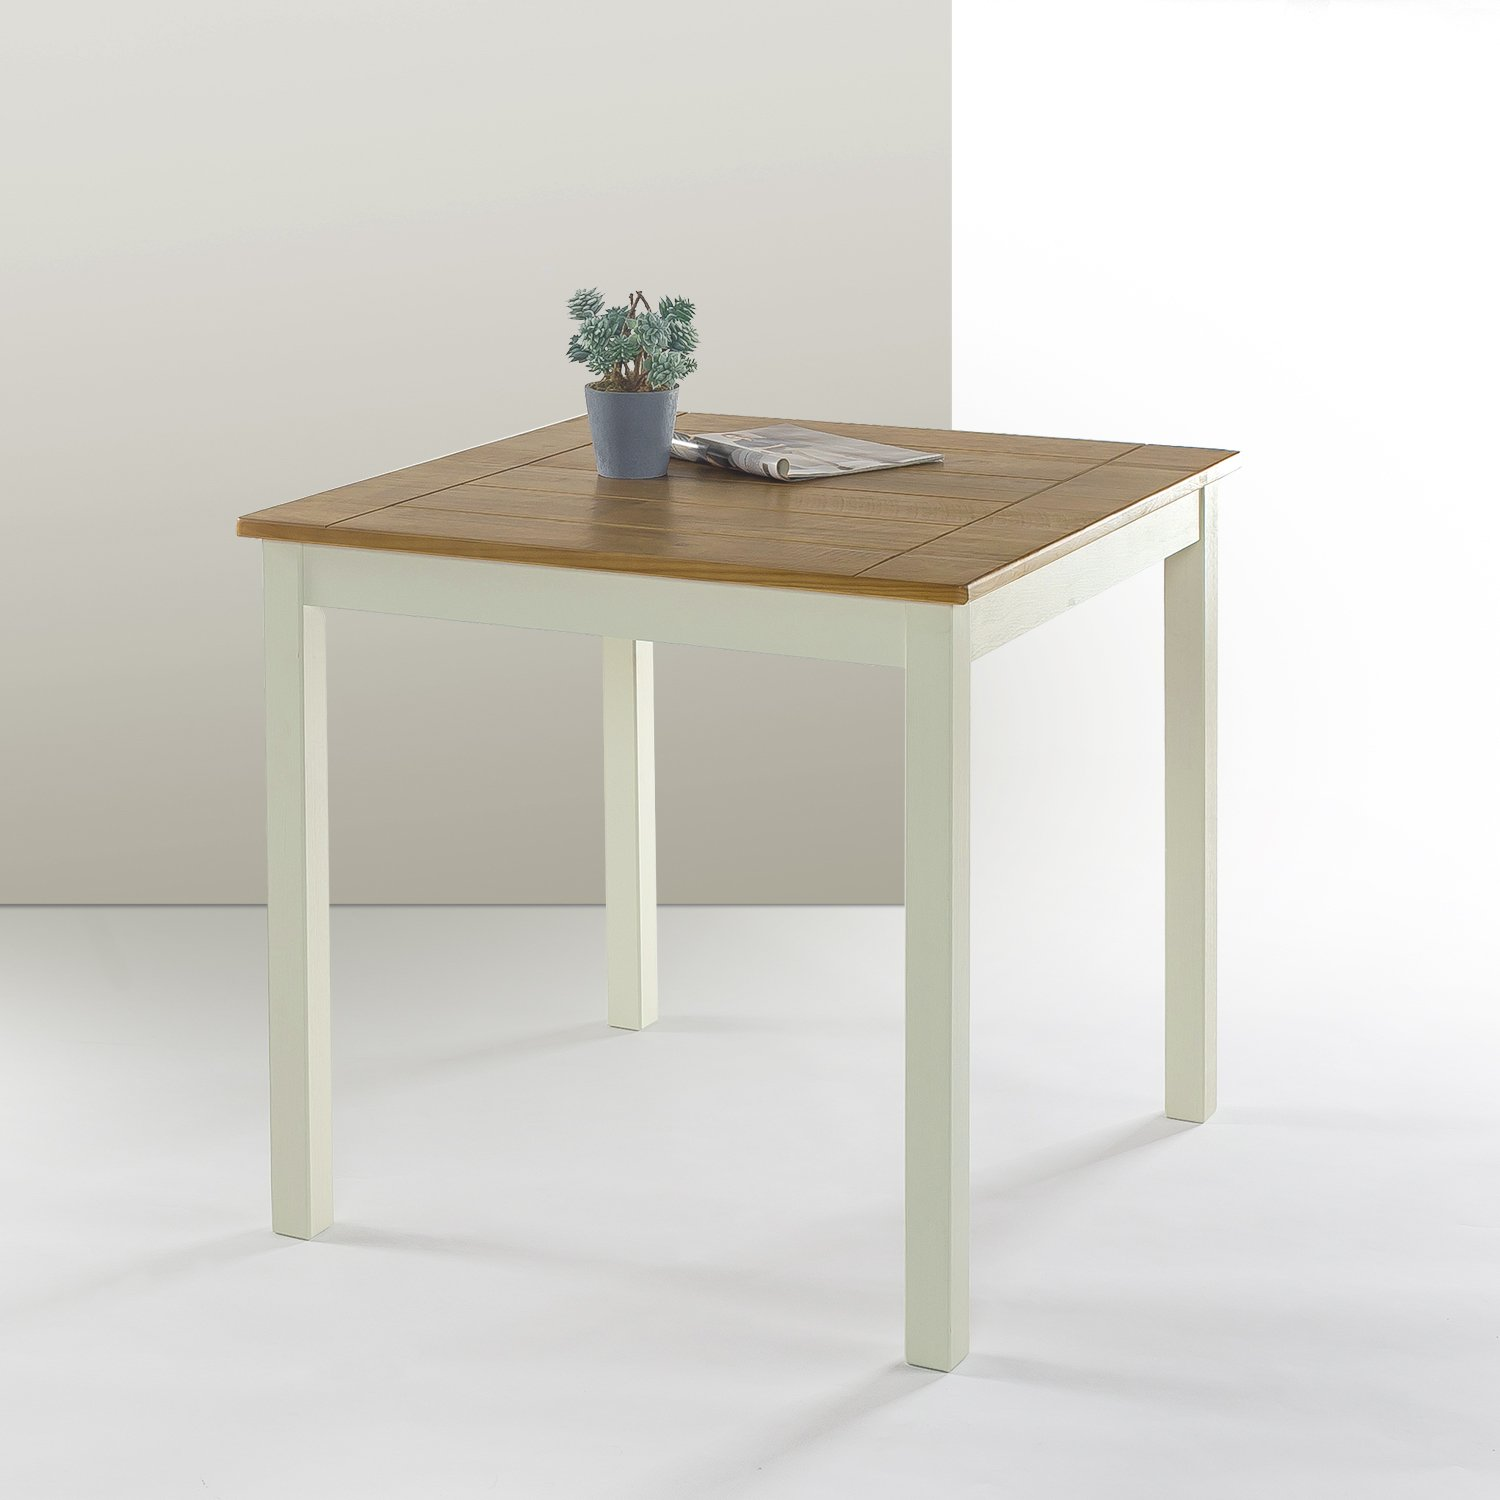 Zinus Becky Farmhouse Square Wood Dining Table by Zinus